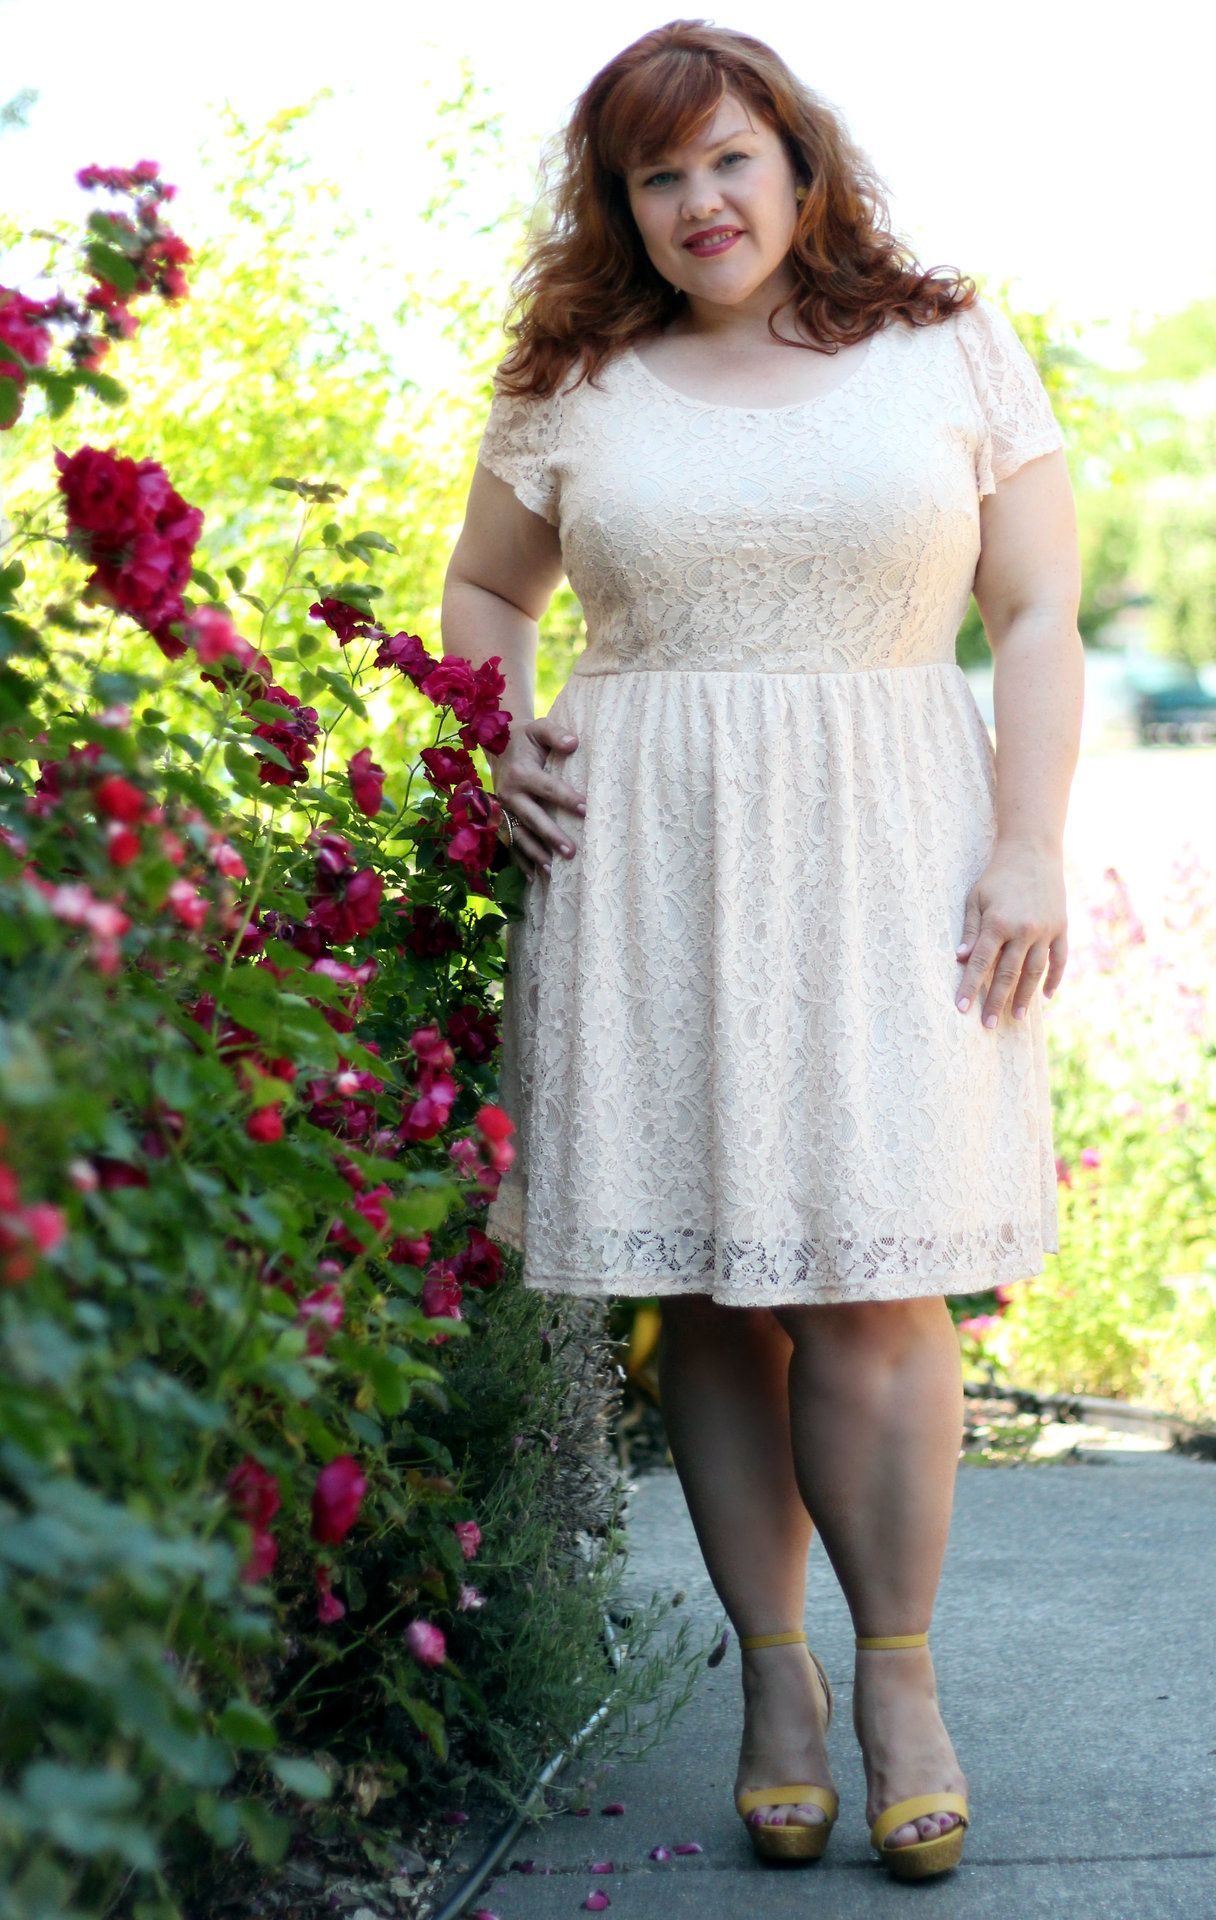 23e70fe468f3 OOTD 5.17.13 Cream Lace Dress Dress - Forever 21 + So I m no longer a blond  these days. It s been a couple of months since I posted an outfit of the  day ...